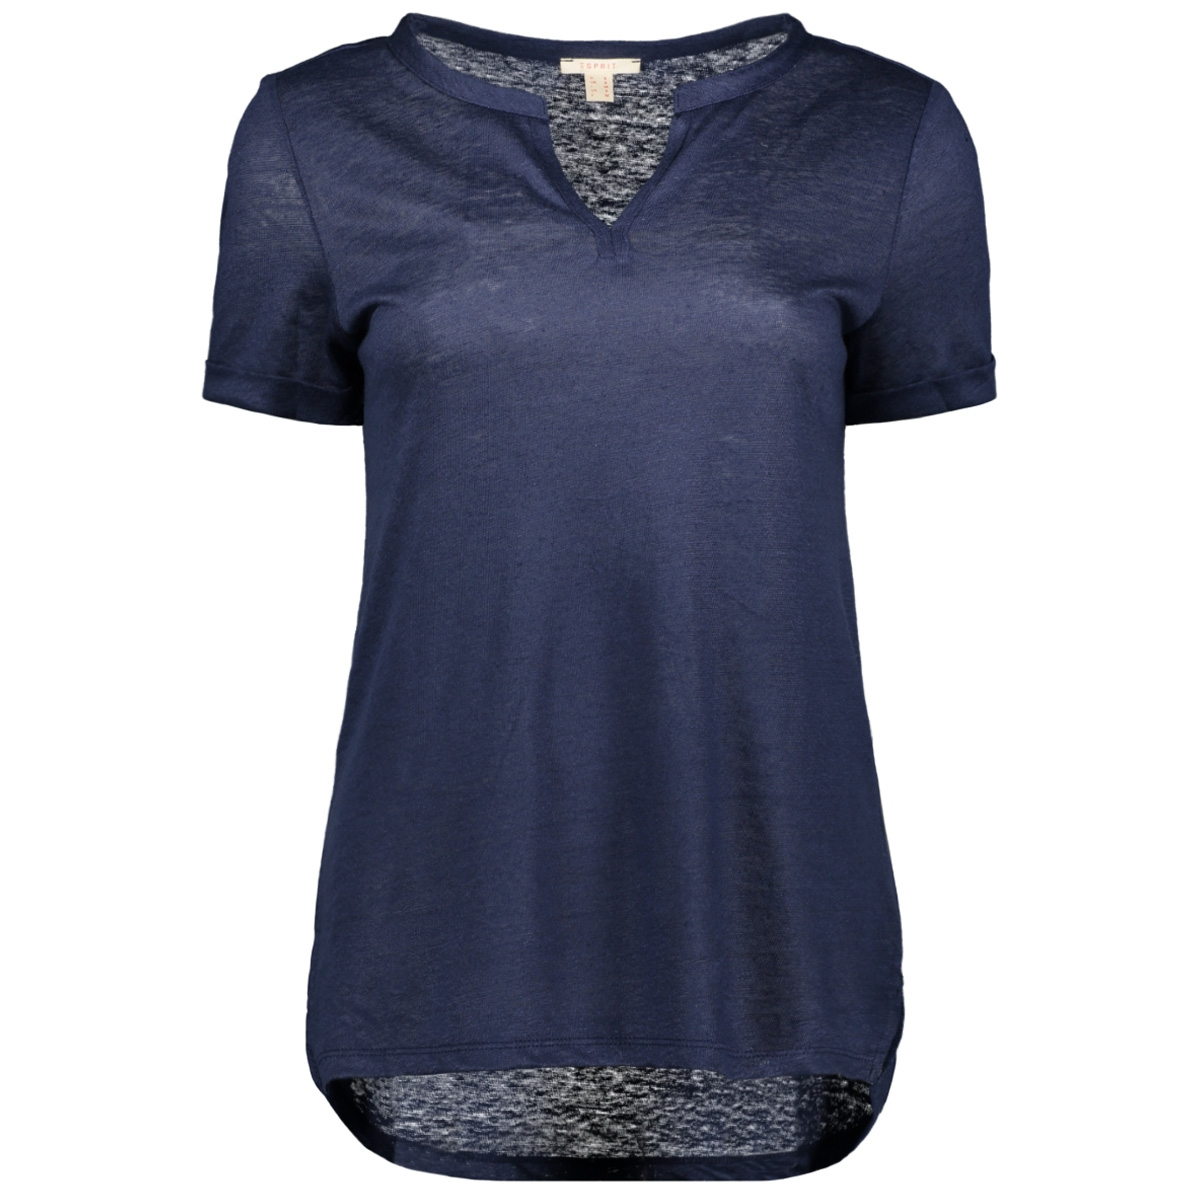 fashion tshirt 049ee1k009 esprit t-shirt e400